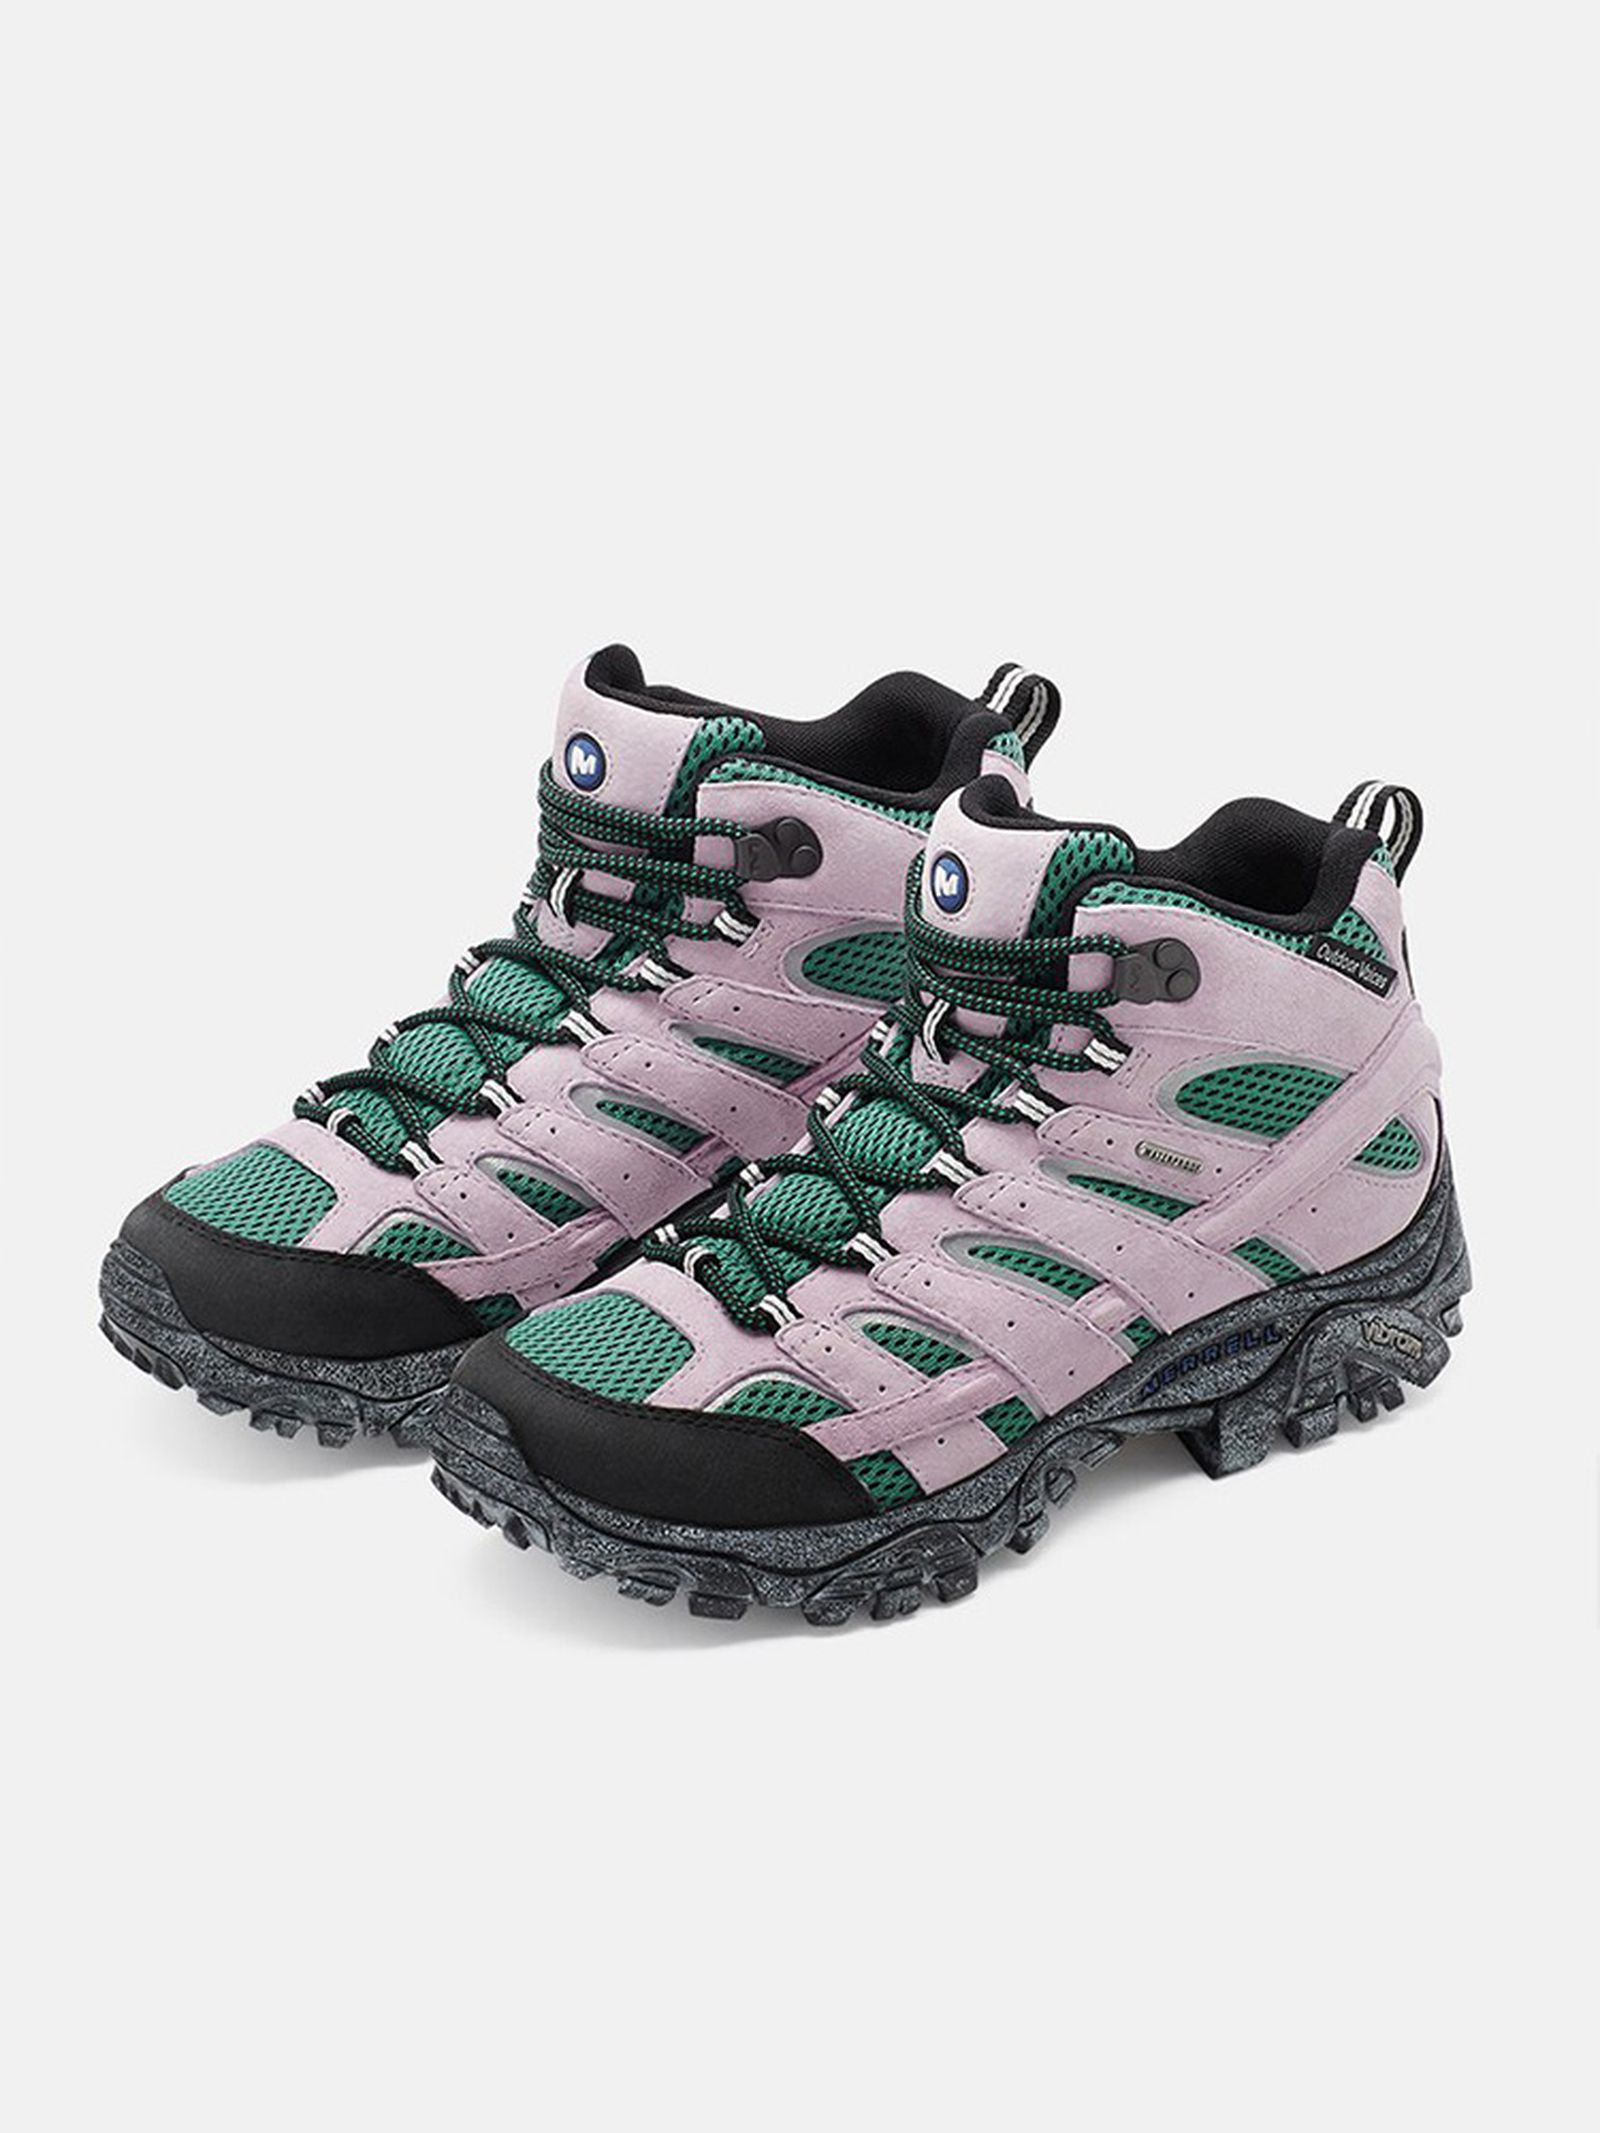 Outdoor Voices x Merrell Moab 2 Mid purple